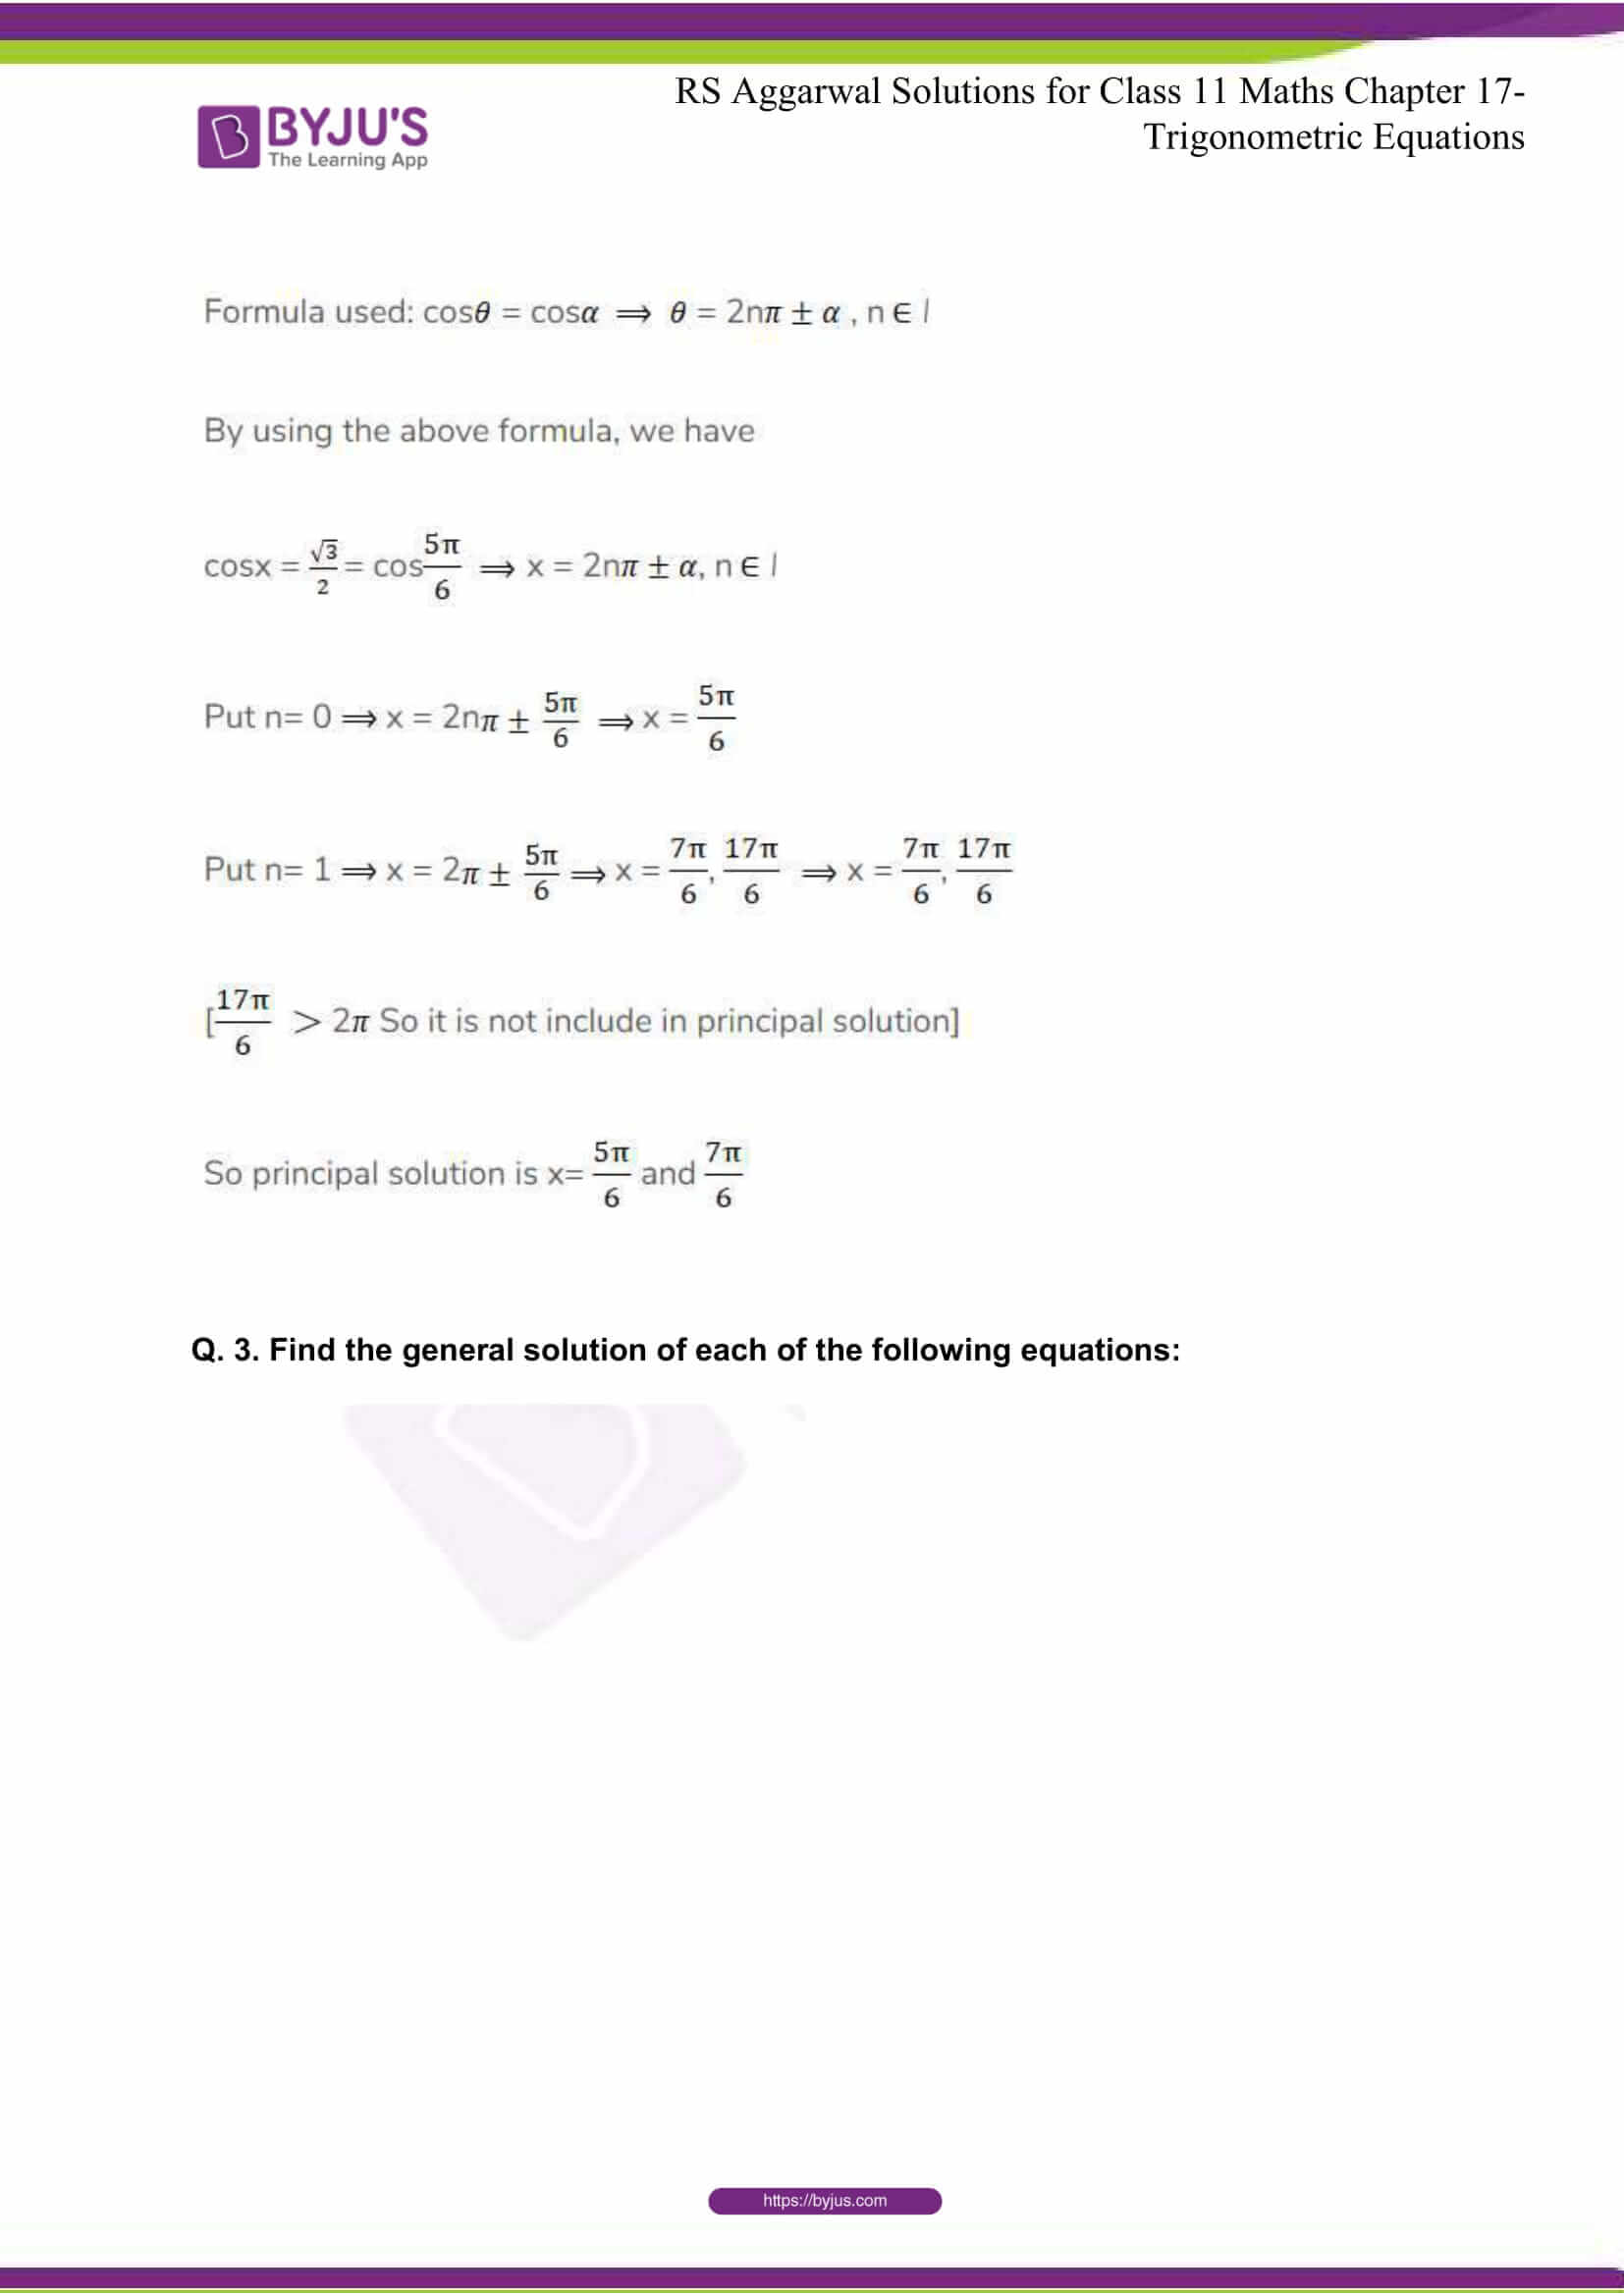 rsaggarwal solutions class 11 maths chapter 17 14